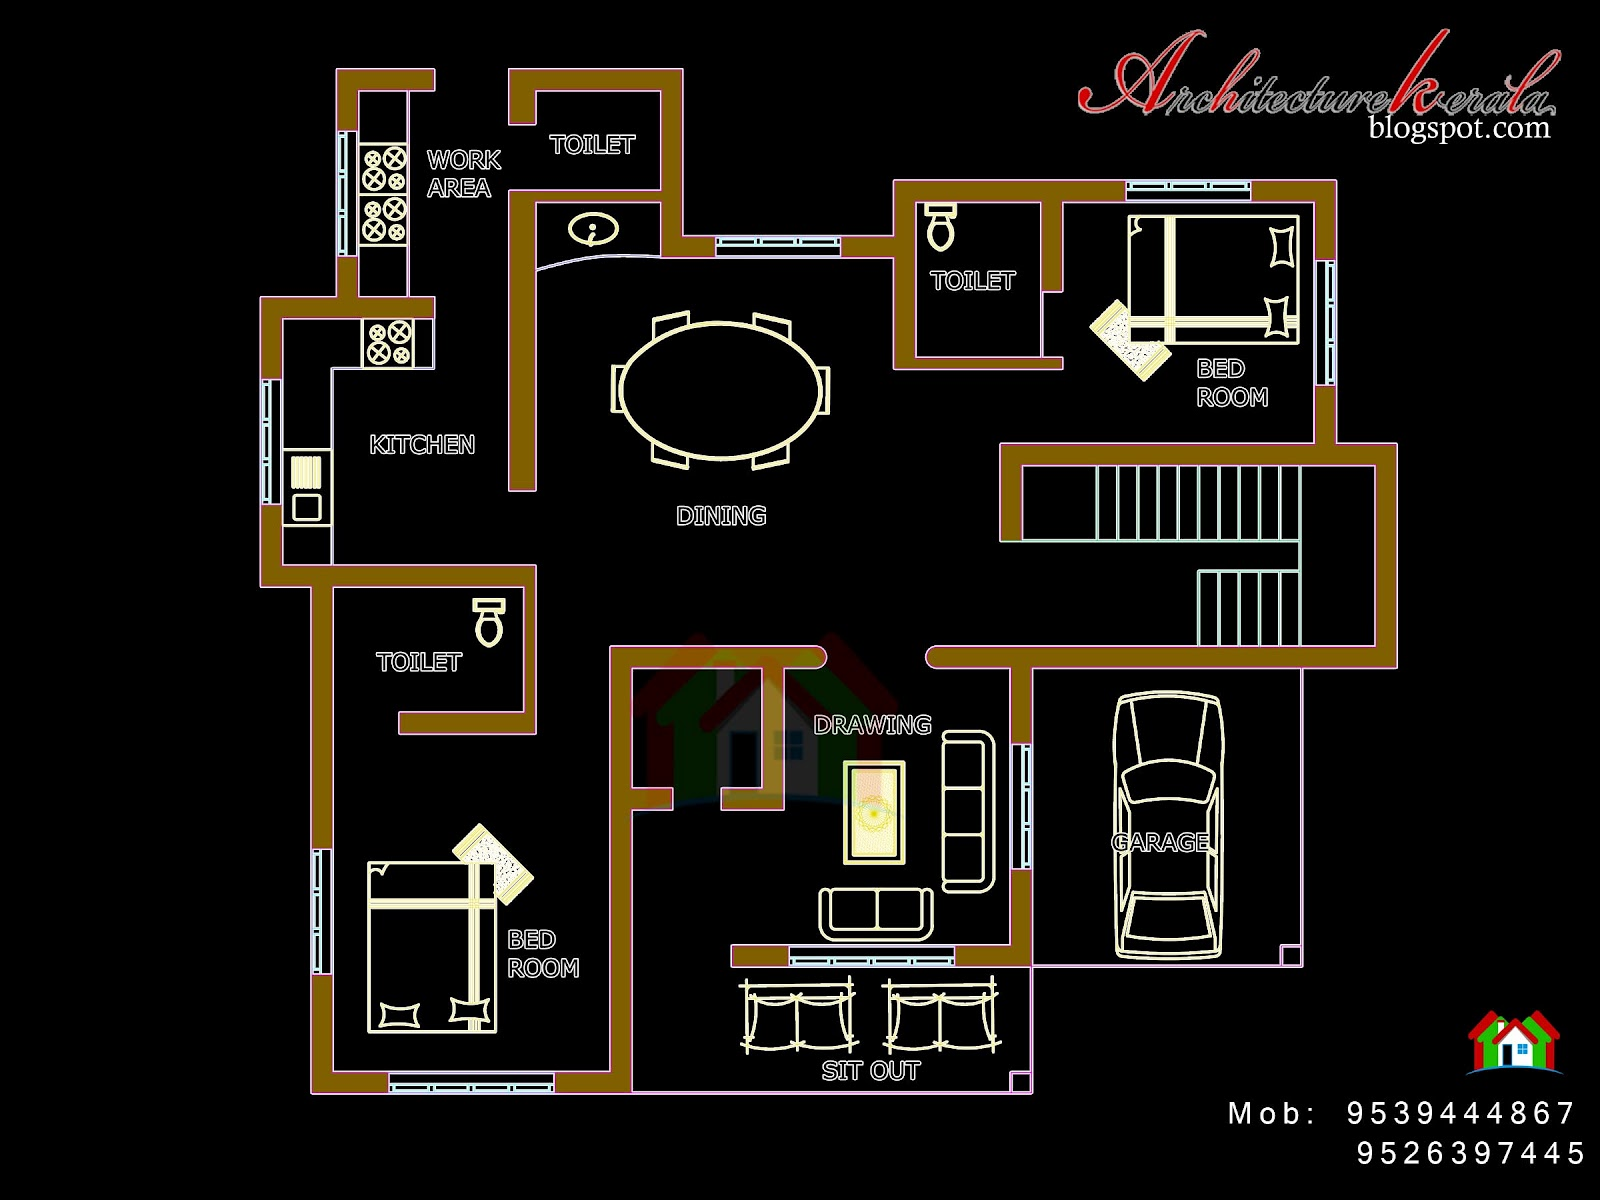 Architecture Kerala: FOUR BED ROOM HOUSE PLAN